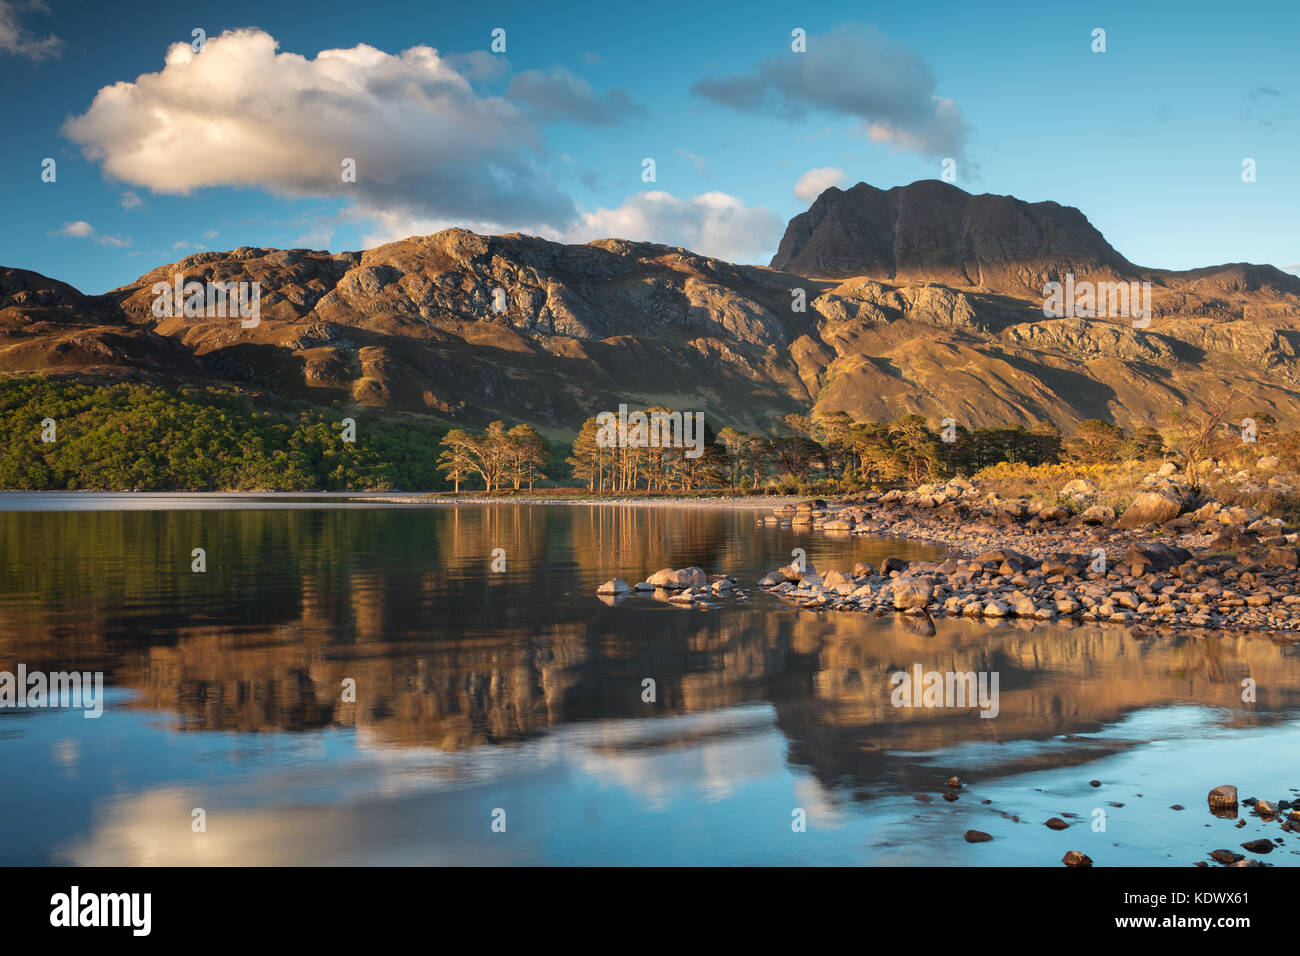 Evening light & perfect reflections on Loch Maree & Slioch, Wester Ross, Scotland - Stock Image